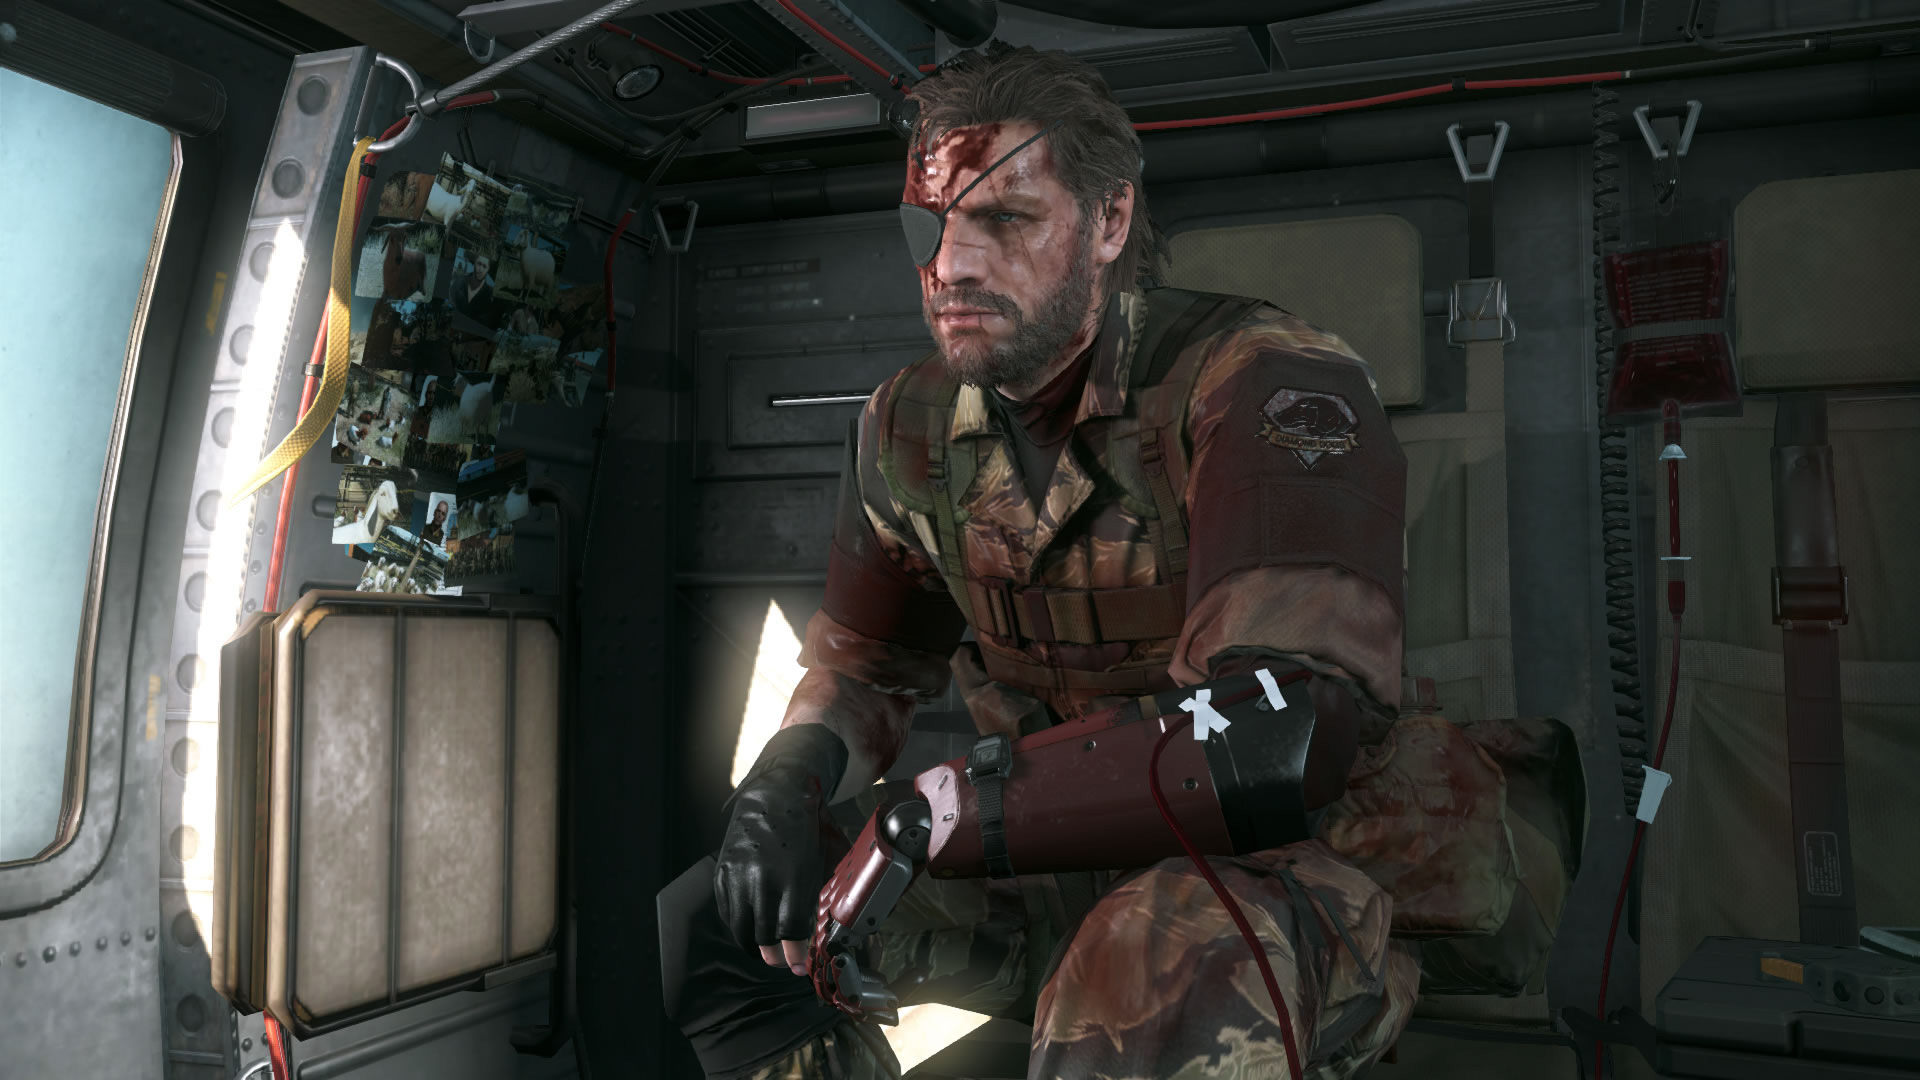 Metal-Gear-Solid-V-The-Phantom-Pain-E3-2015-Screen-Big-Boss-Chopper-Blood-Transfusion